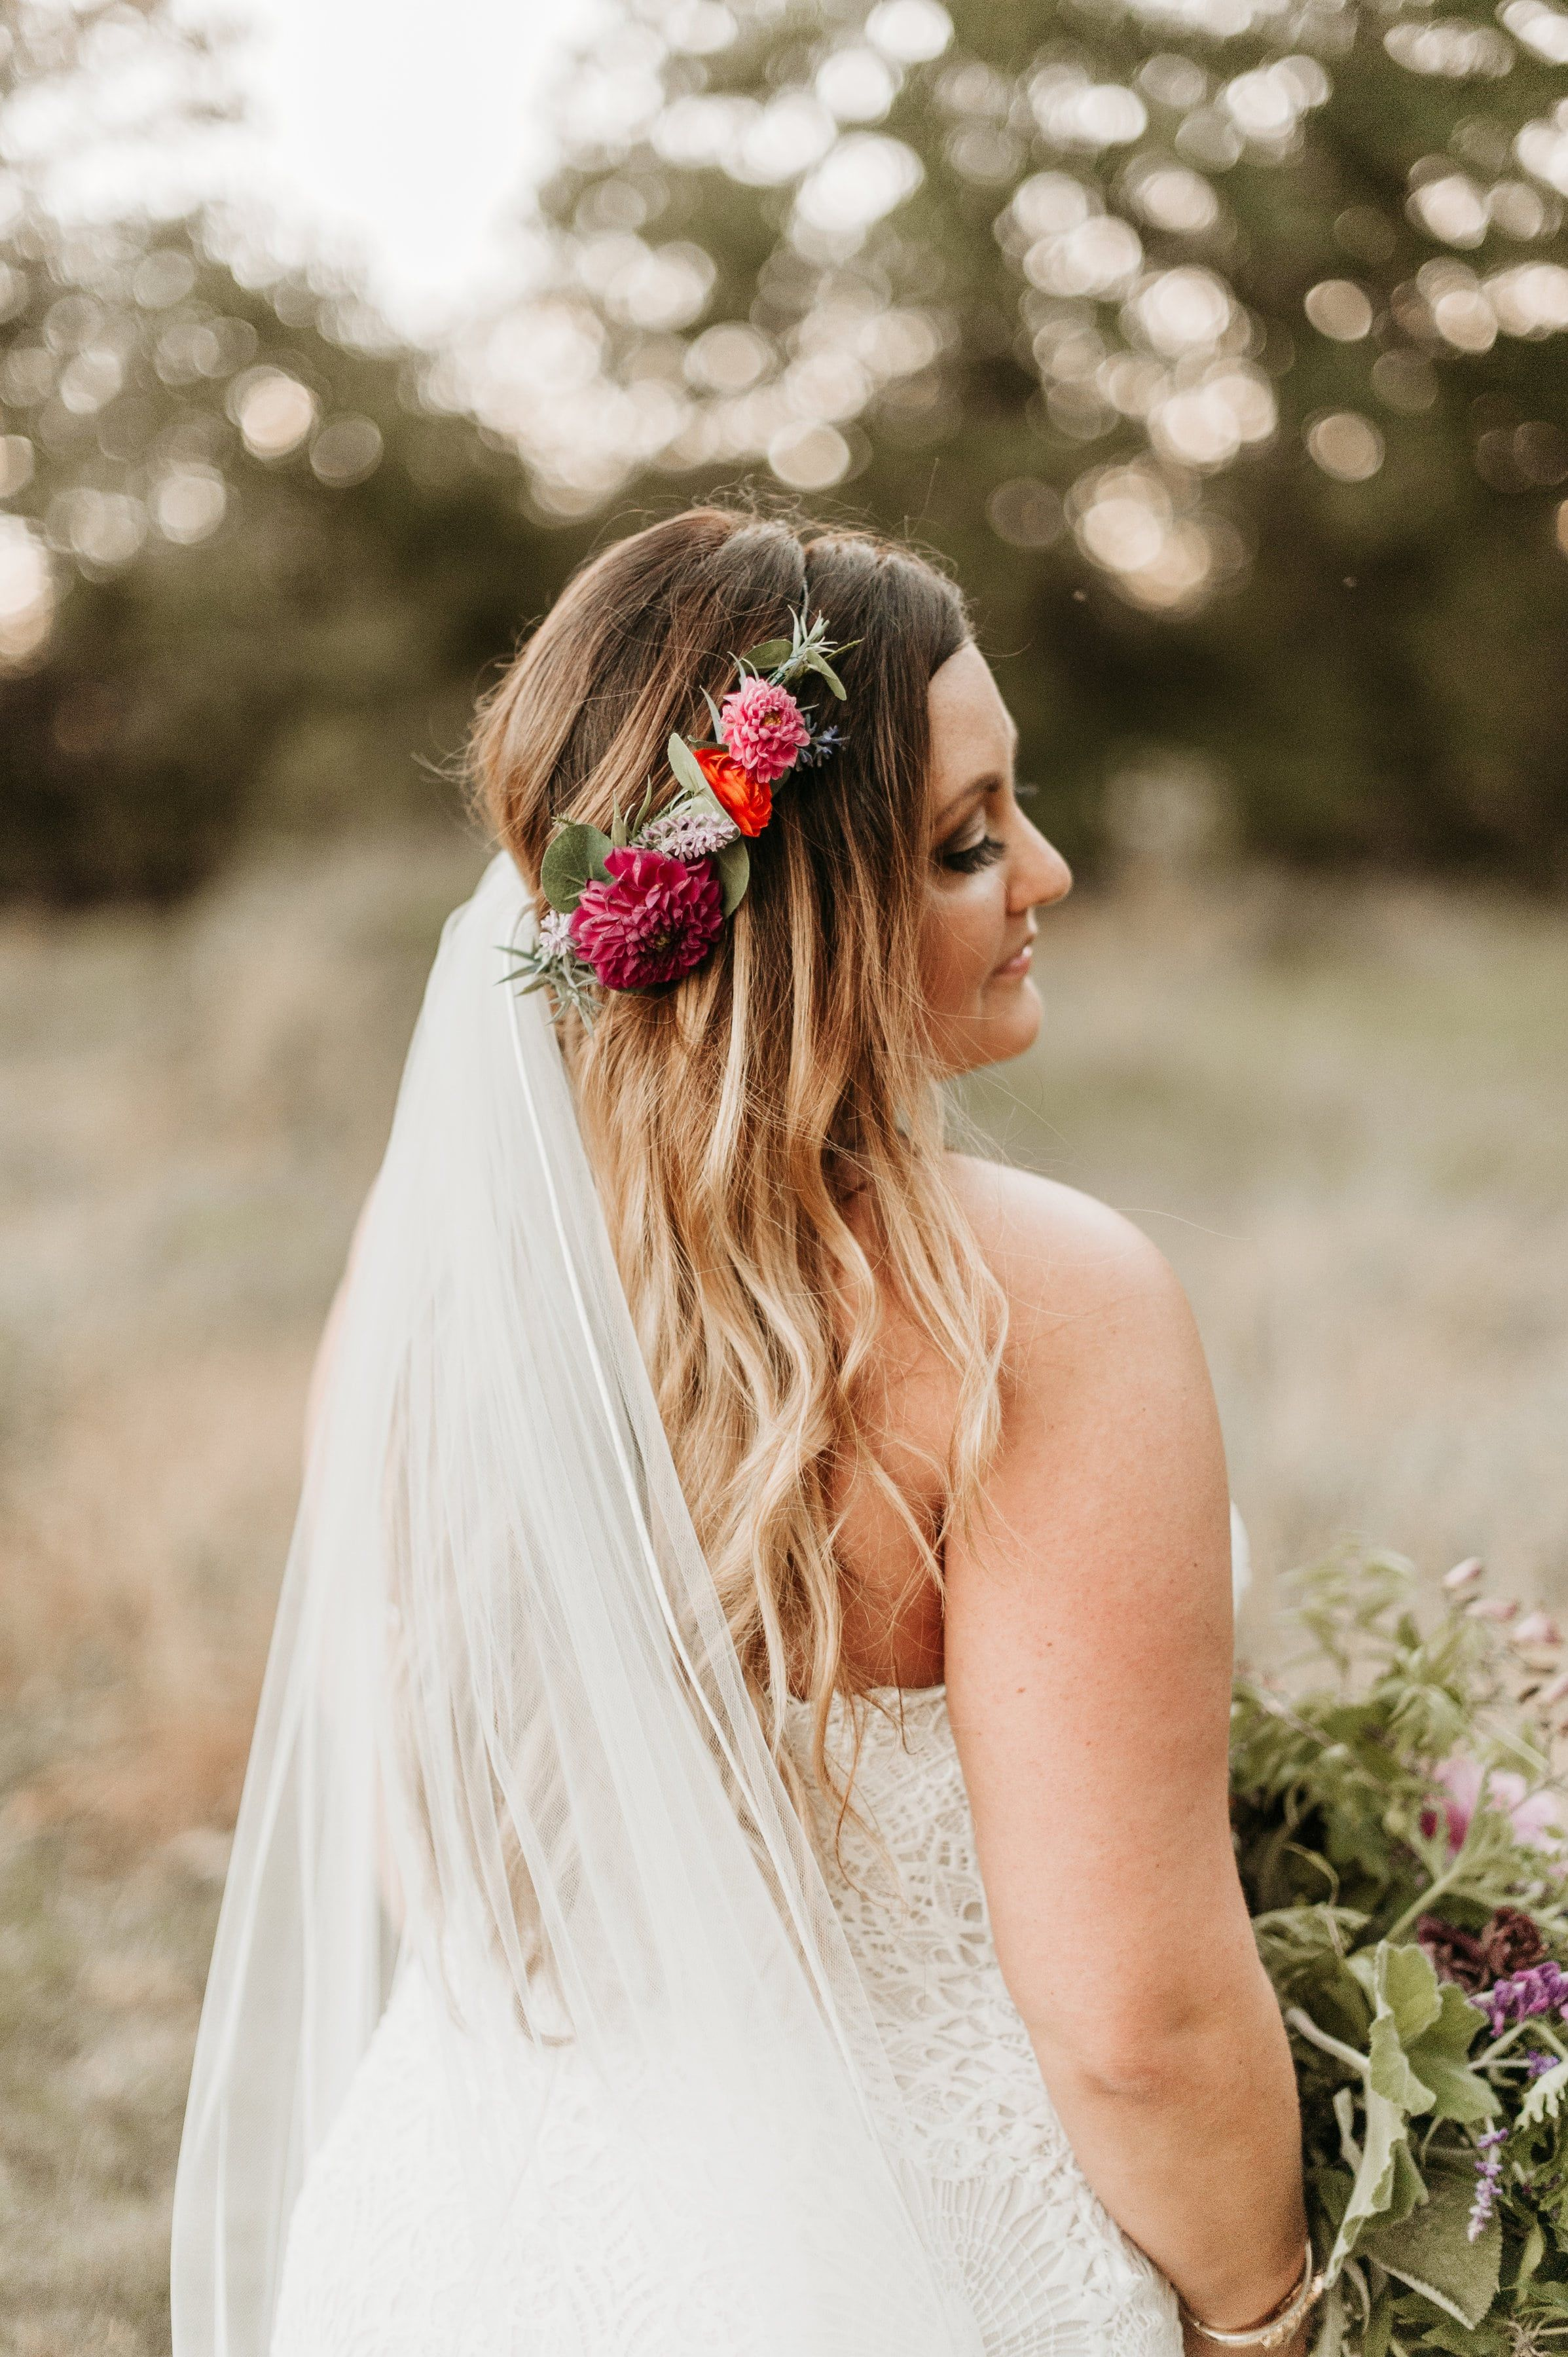 Flower Crown Bride With Veil In 2019 Flower Crown Bride